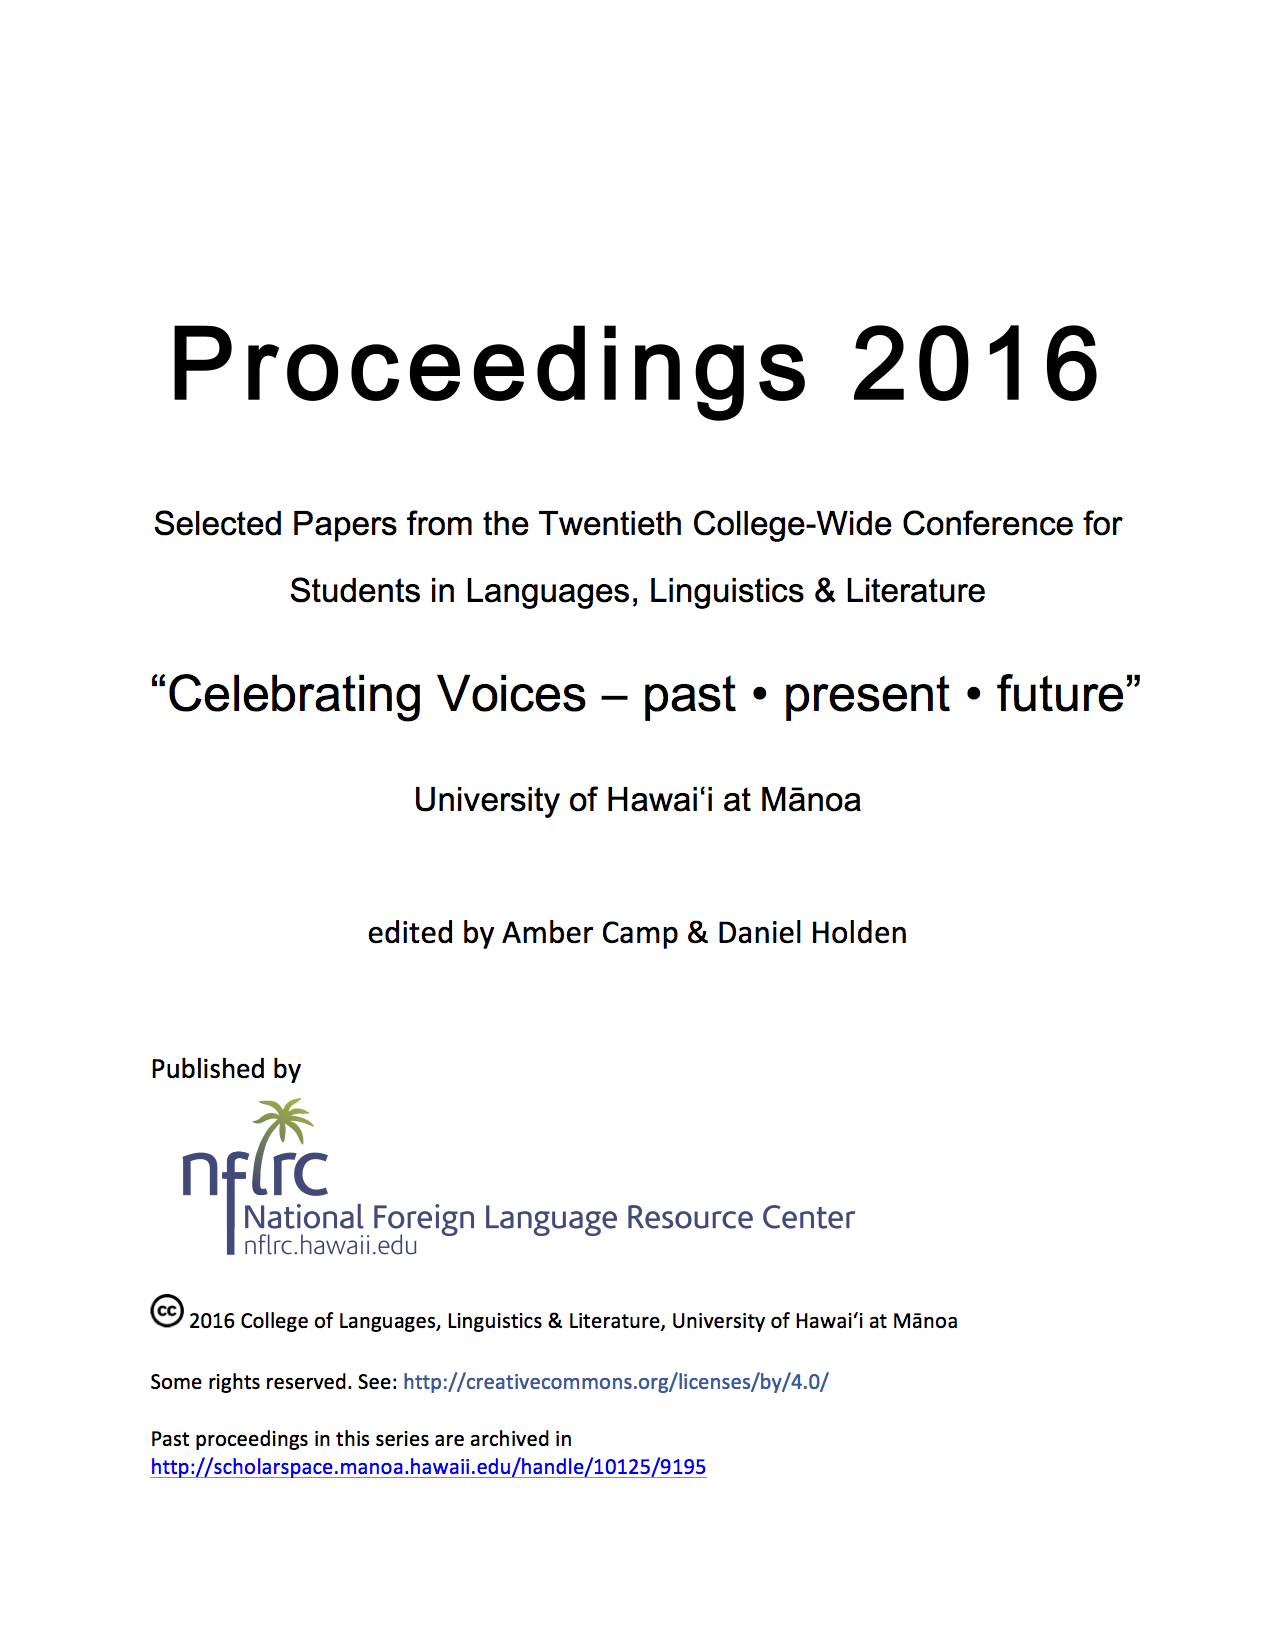 Proceedings 2016 cover image